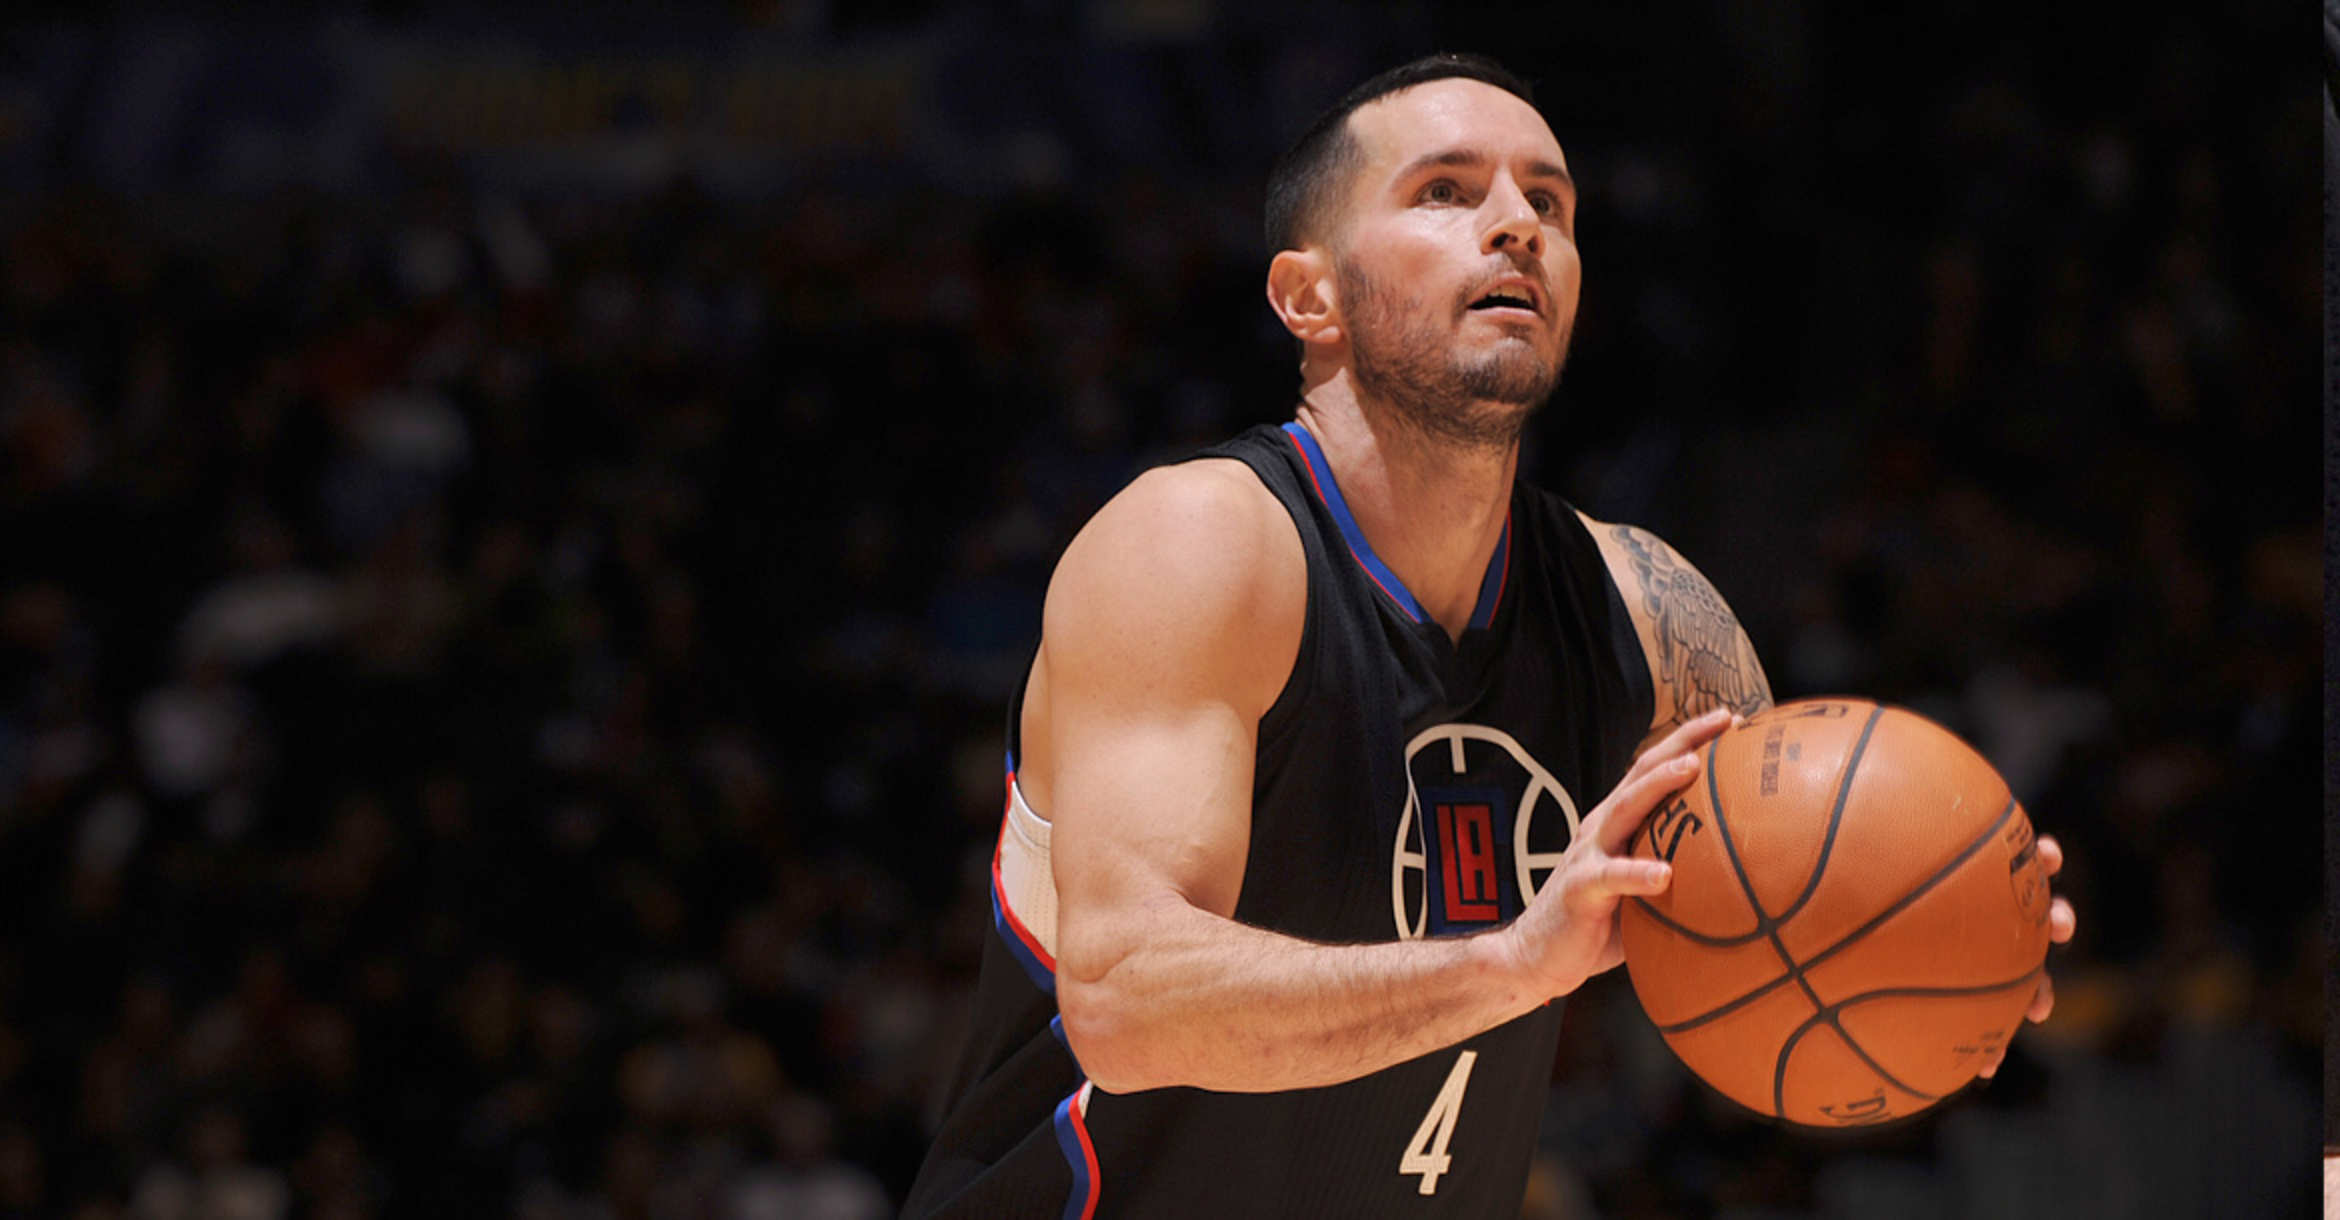 Late Start Gives Redick's Heel More Time To Heal | LA Clippers